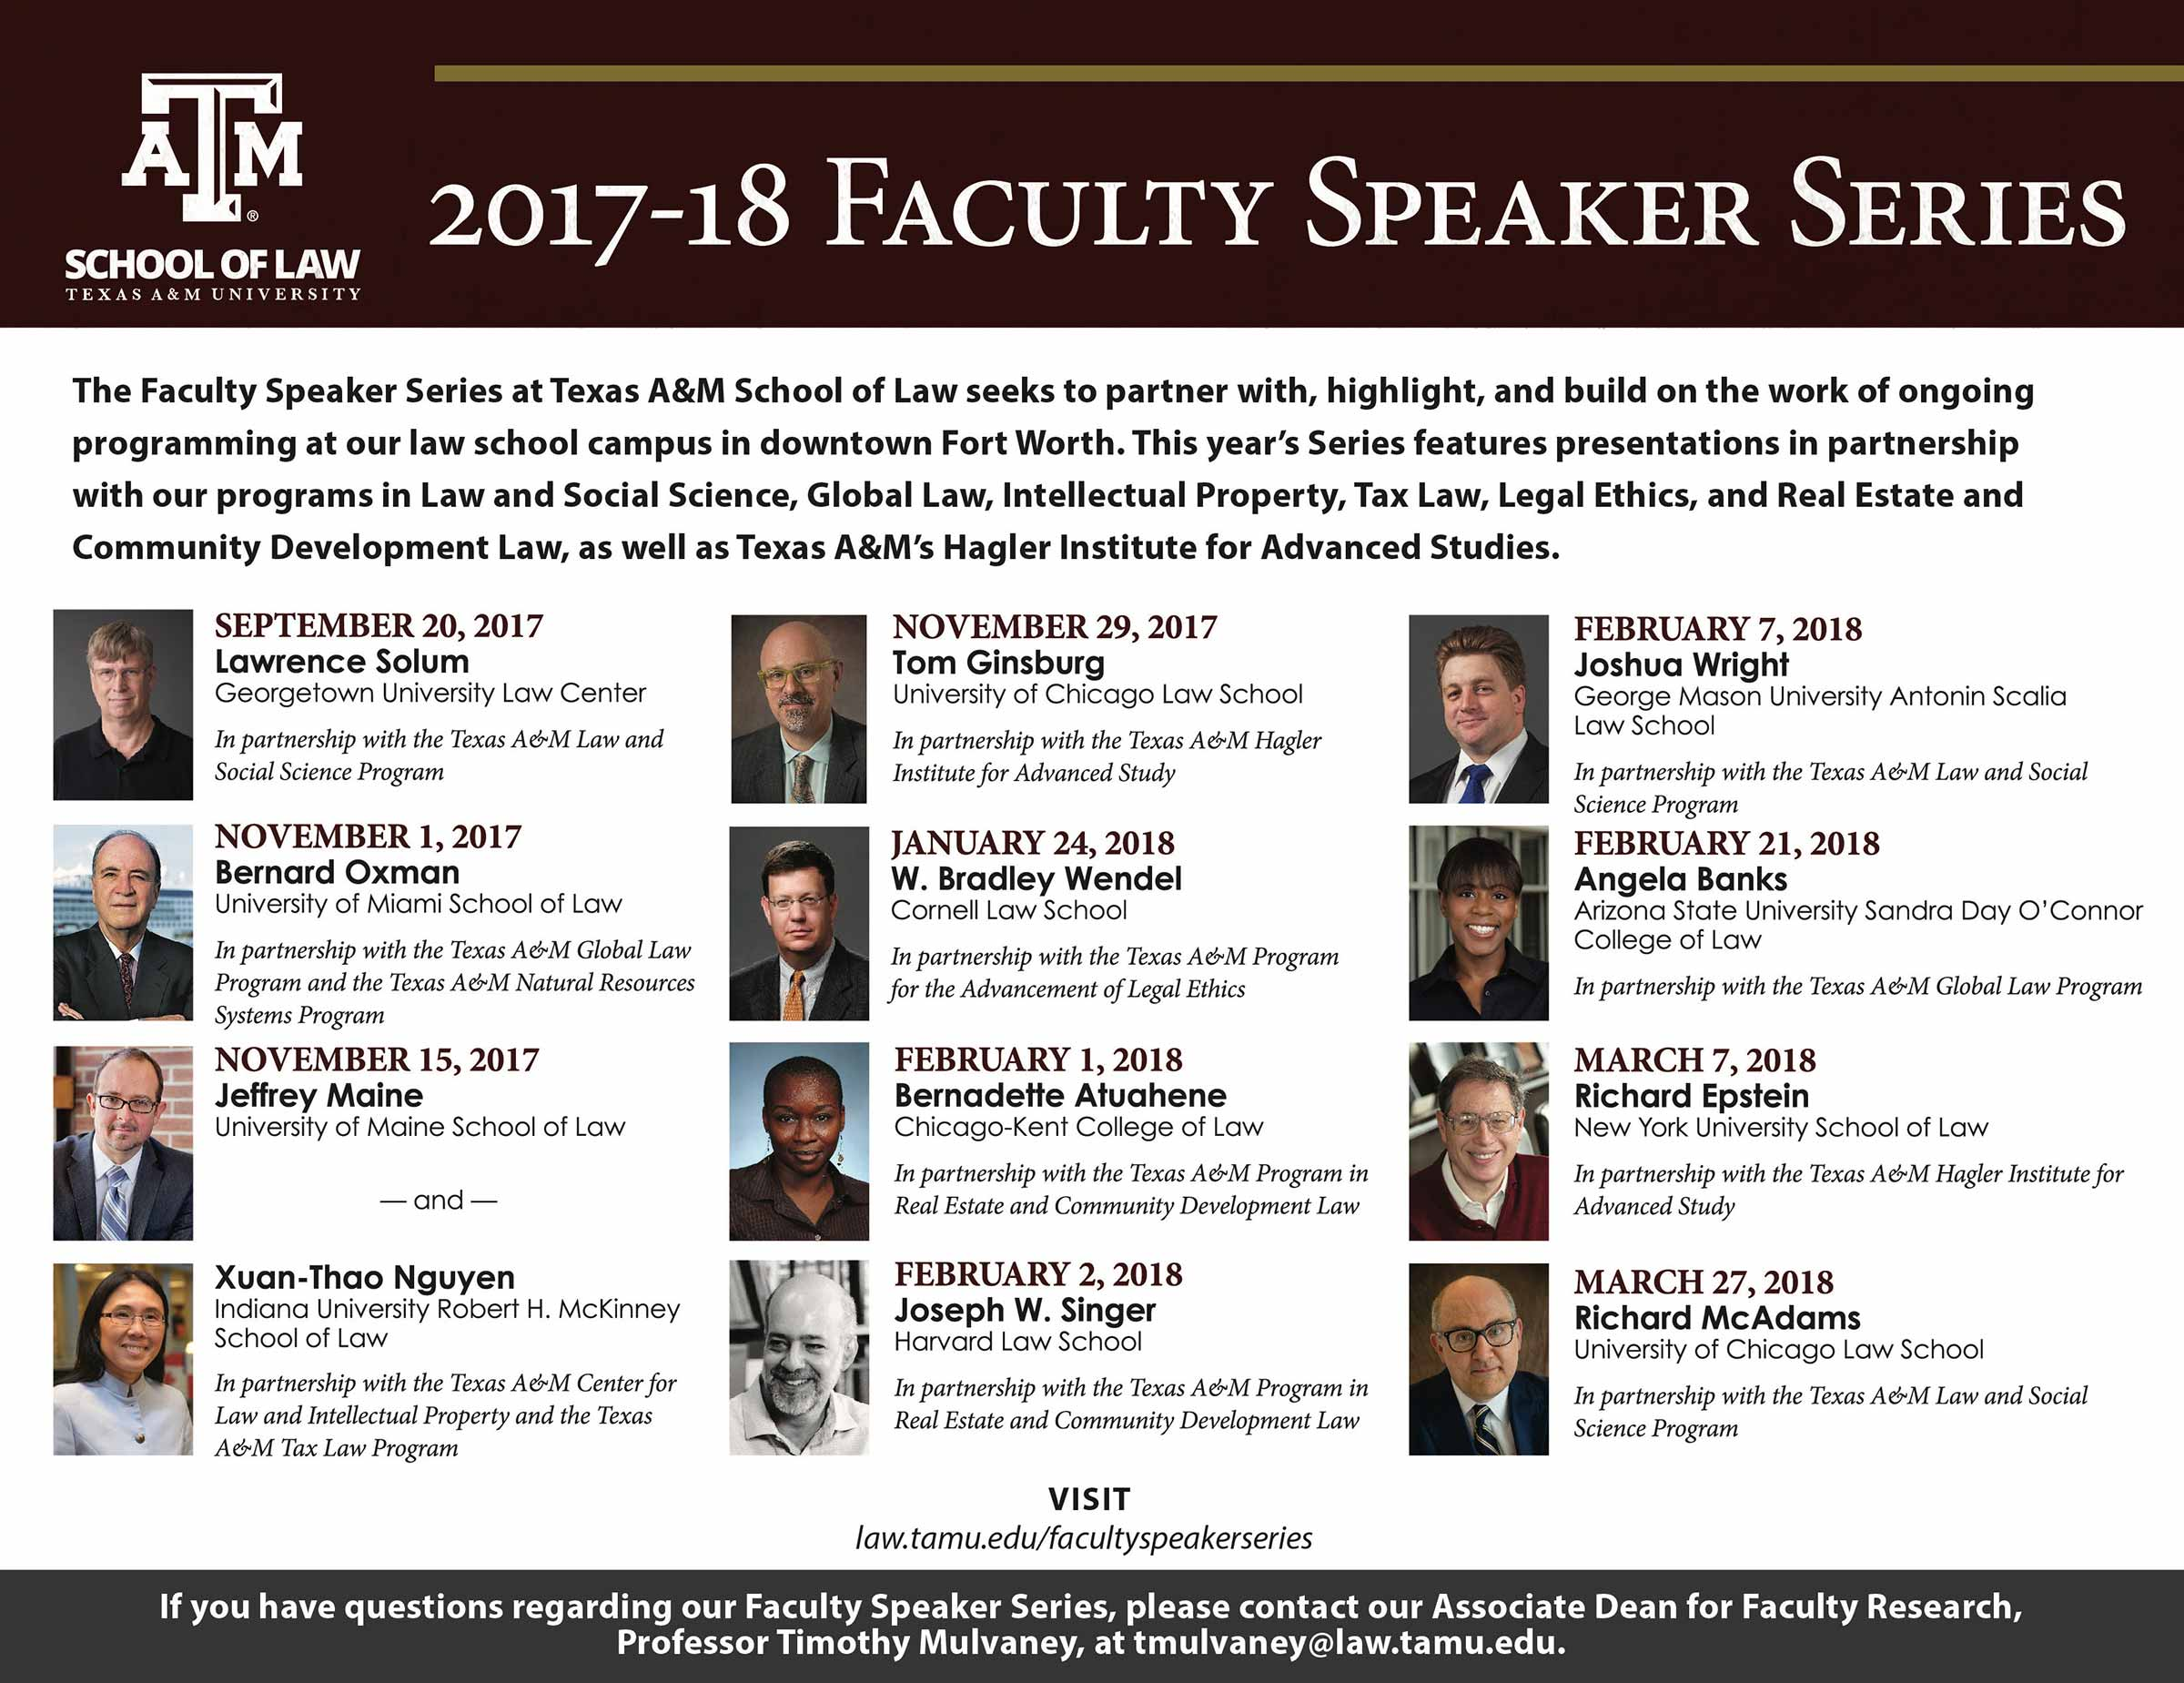 Faculty Speaker Series 2017-18